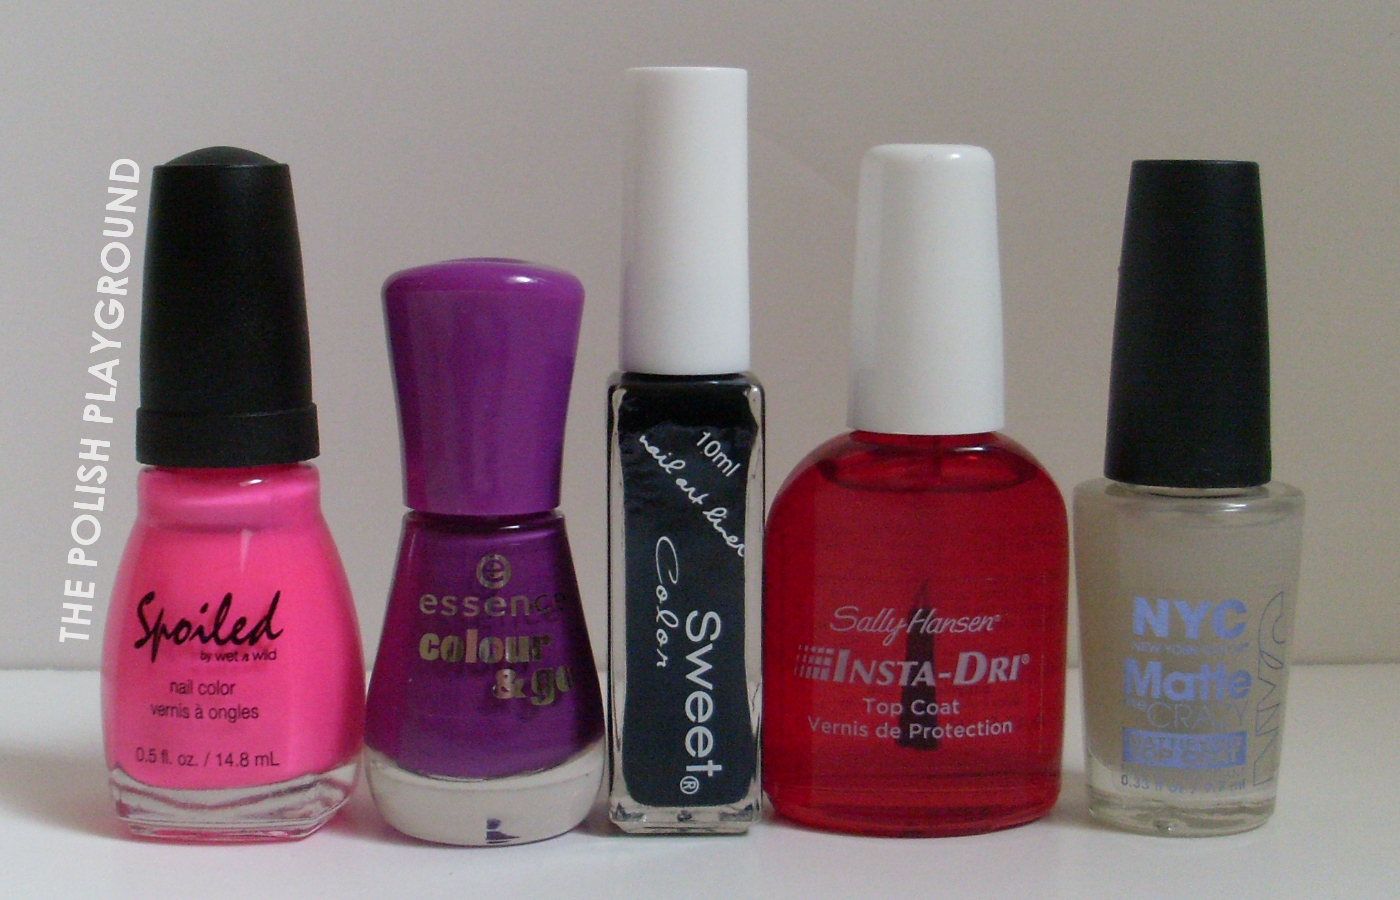 Spoiled by Wet n' Wild, Essence, Born Pretty Store, Sally Hansen, NYC